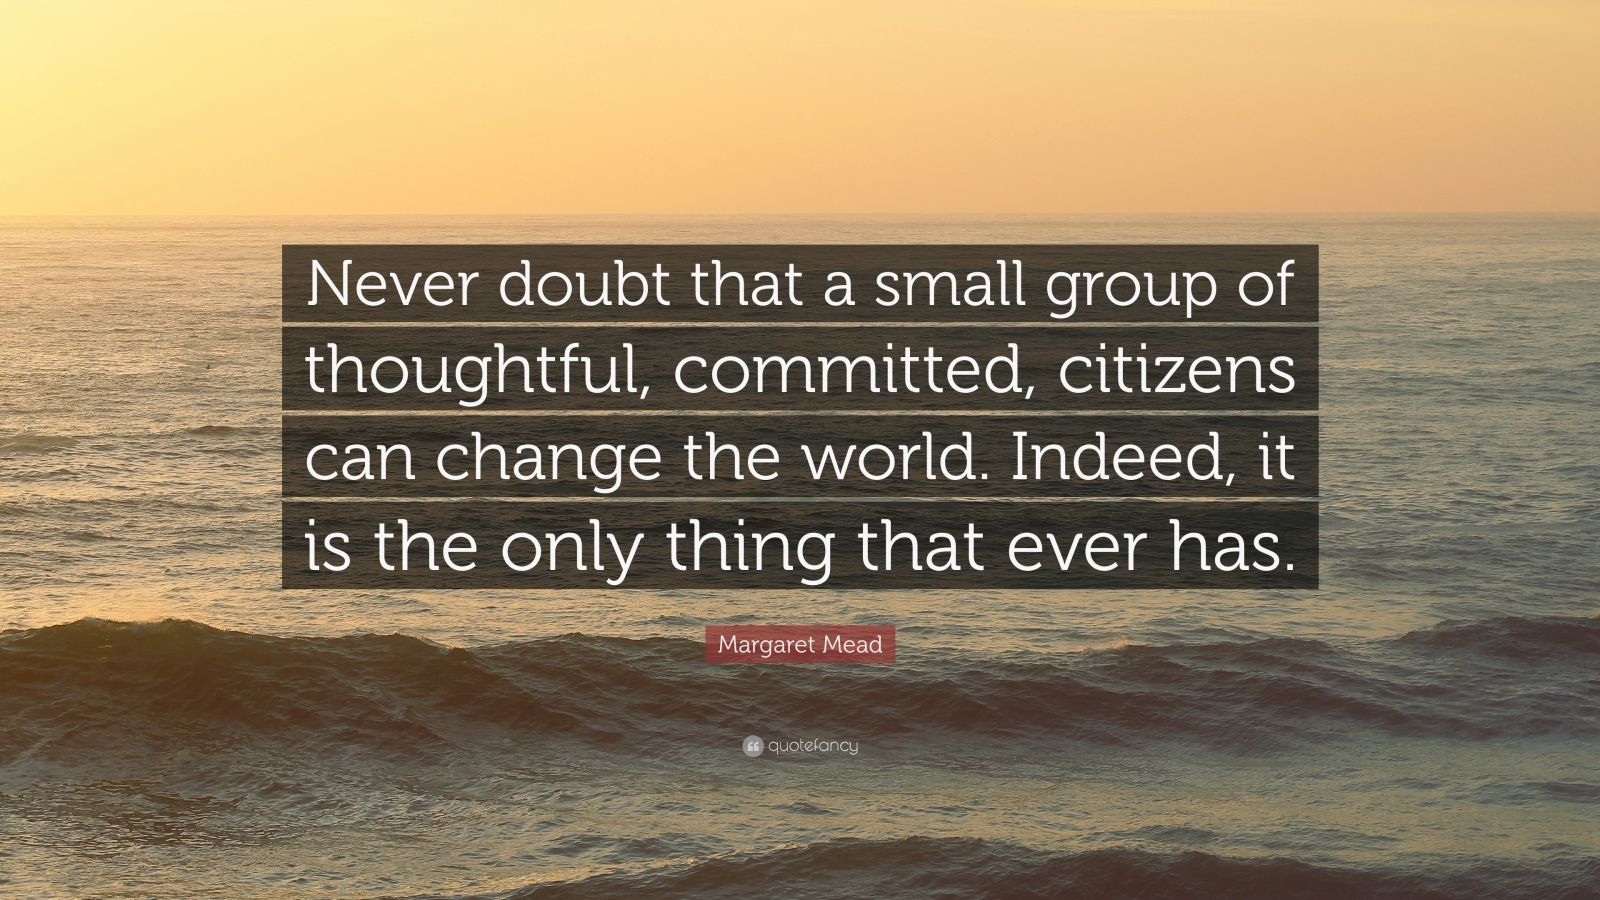 Steve Jobs Motivational Quotes Wallpaper Margaret Mead Quote Never Doubt That A Small Group Of